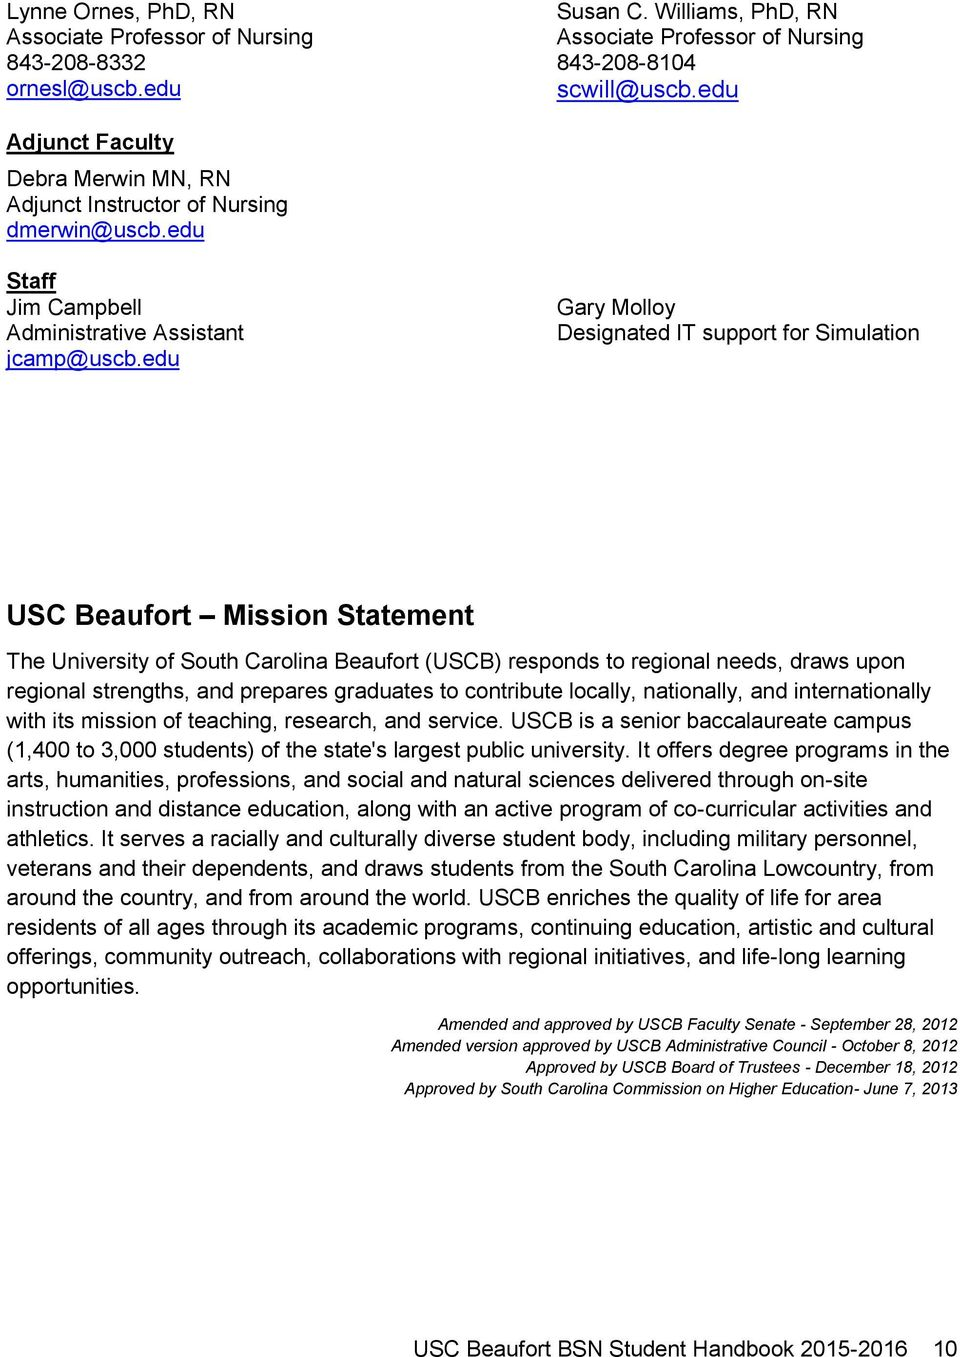 edu Gary Molloy Designated IT support for Simulation USC Beaufort Mission Statement The University of South Carolina Beaufort (USCB) responds to regional needs, draws upon regional strengths, and